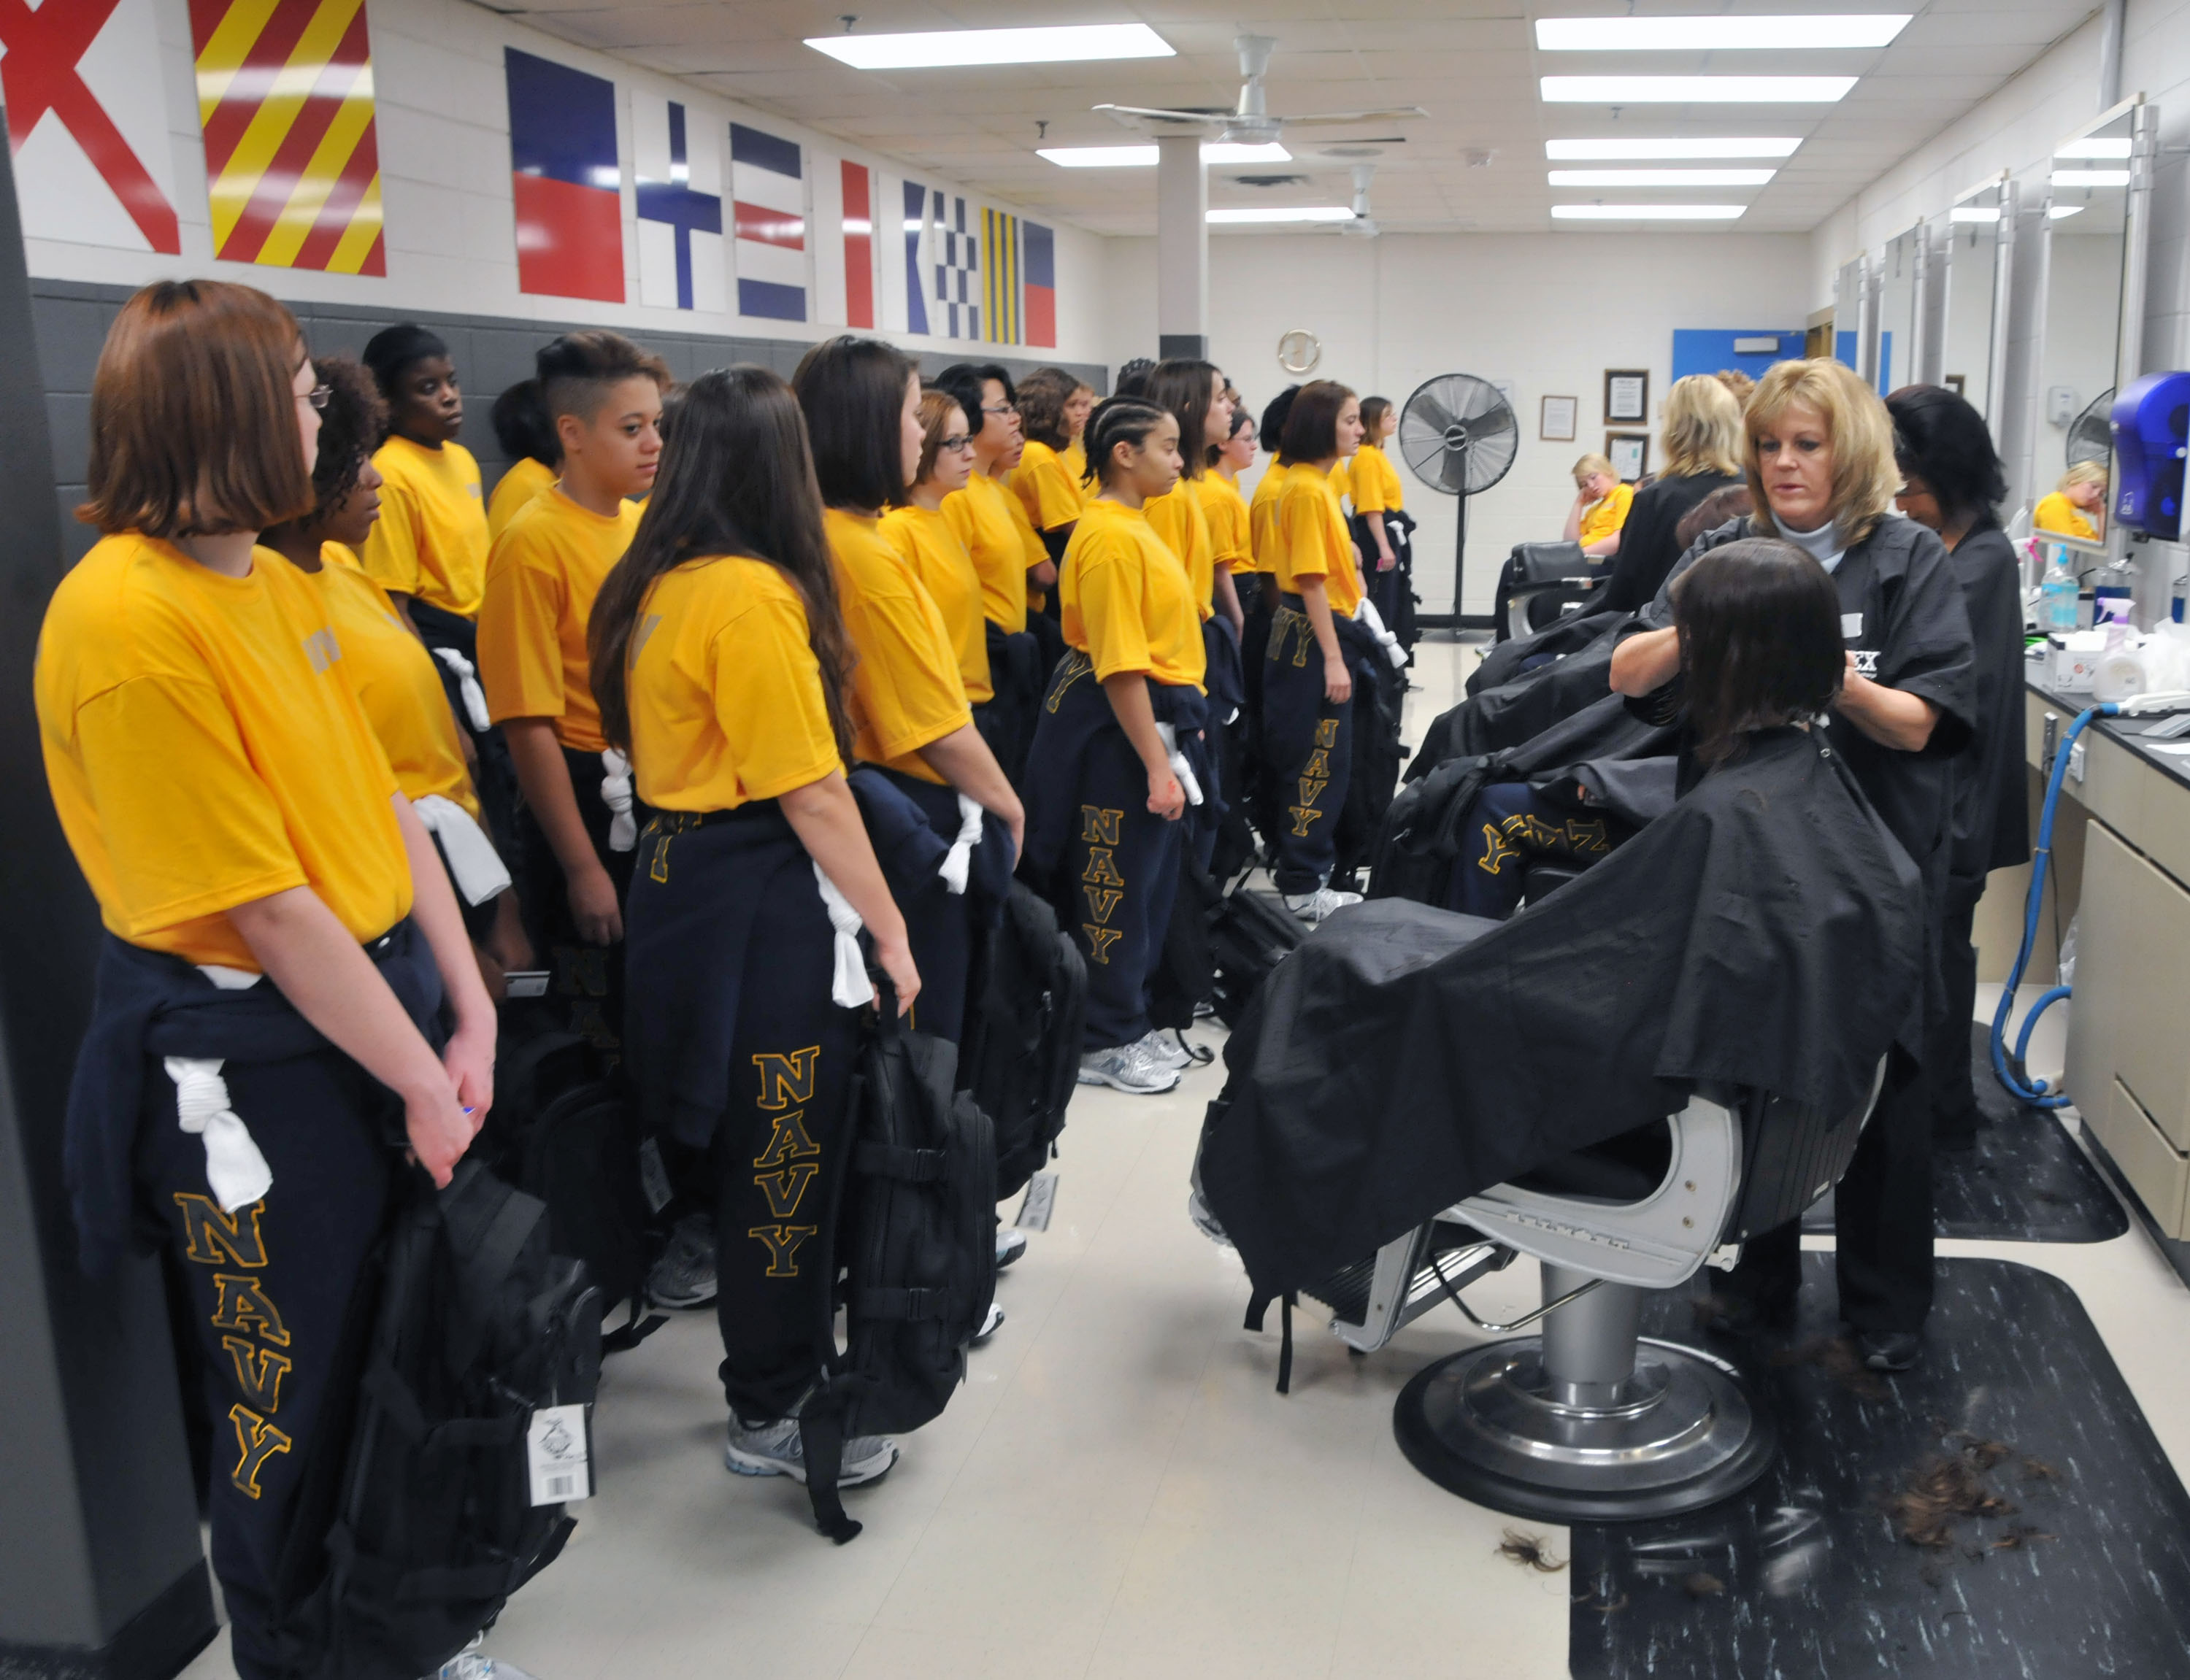 ... Barber Shop at Recruit Training Command (RTC) at Naval Station Great